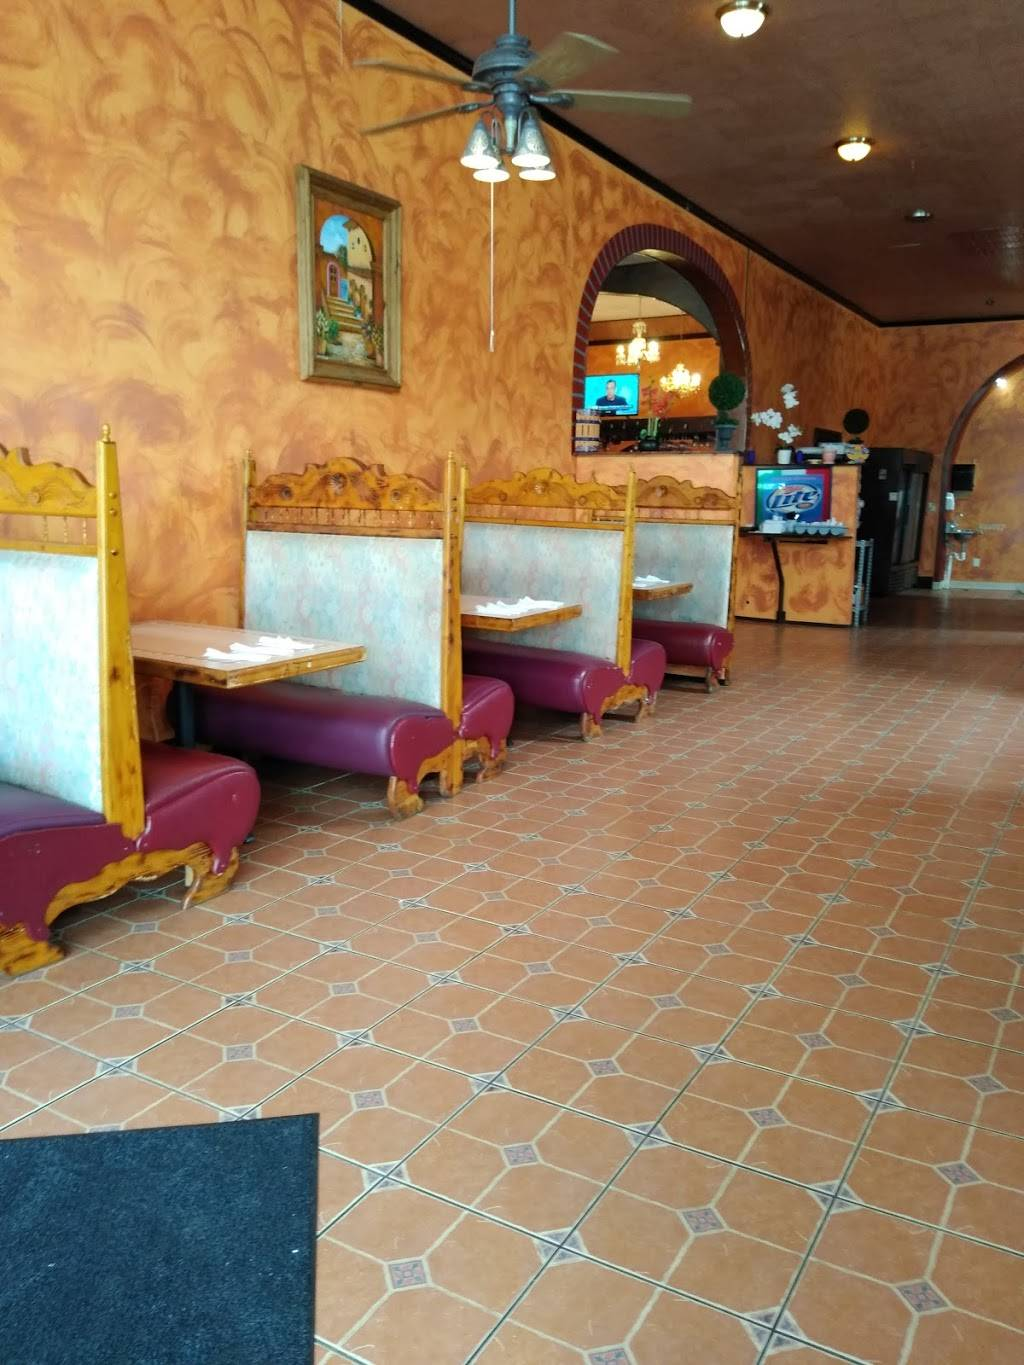 Los tres agaves Mexican grill | restaurant | 300 W Main St, Anamosa, IA 52205, USA | 3194620795 OR +1 319-462-0795